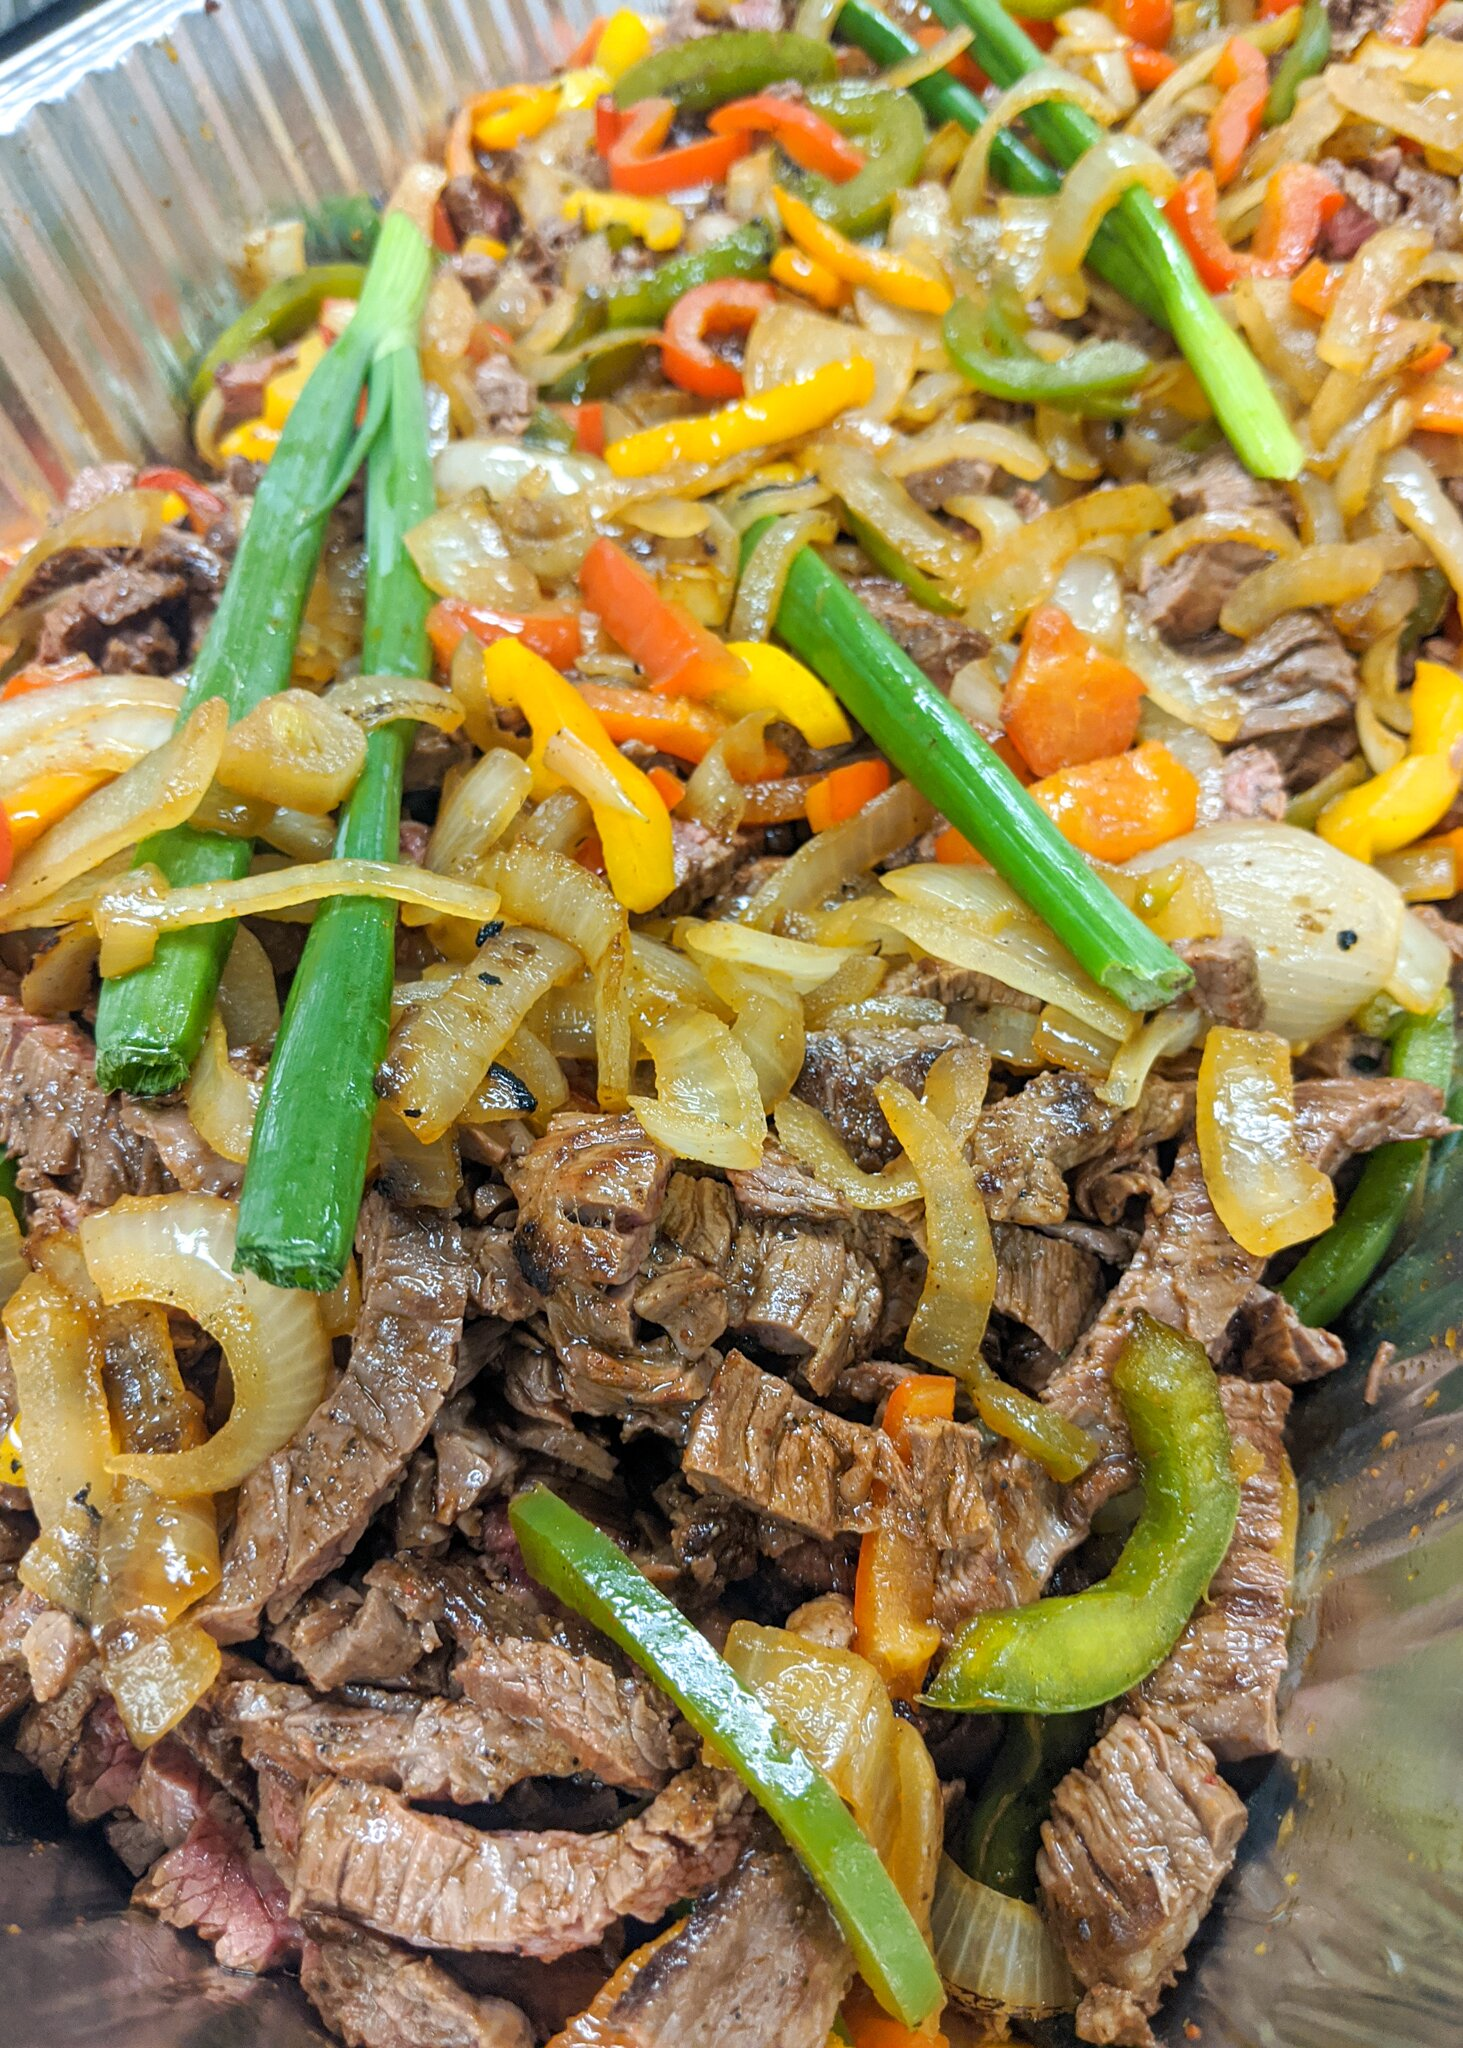 Steak fajitas with onions and peppers}